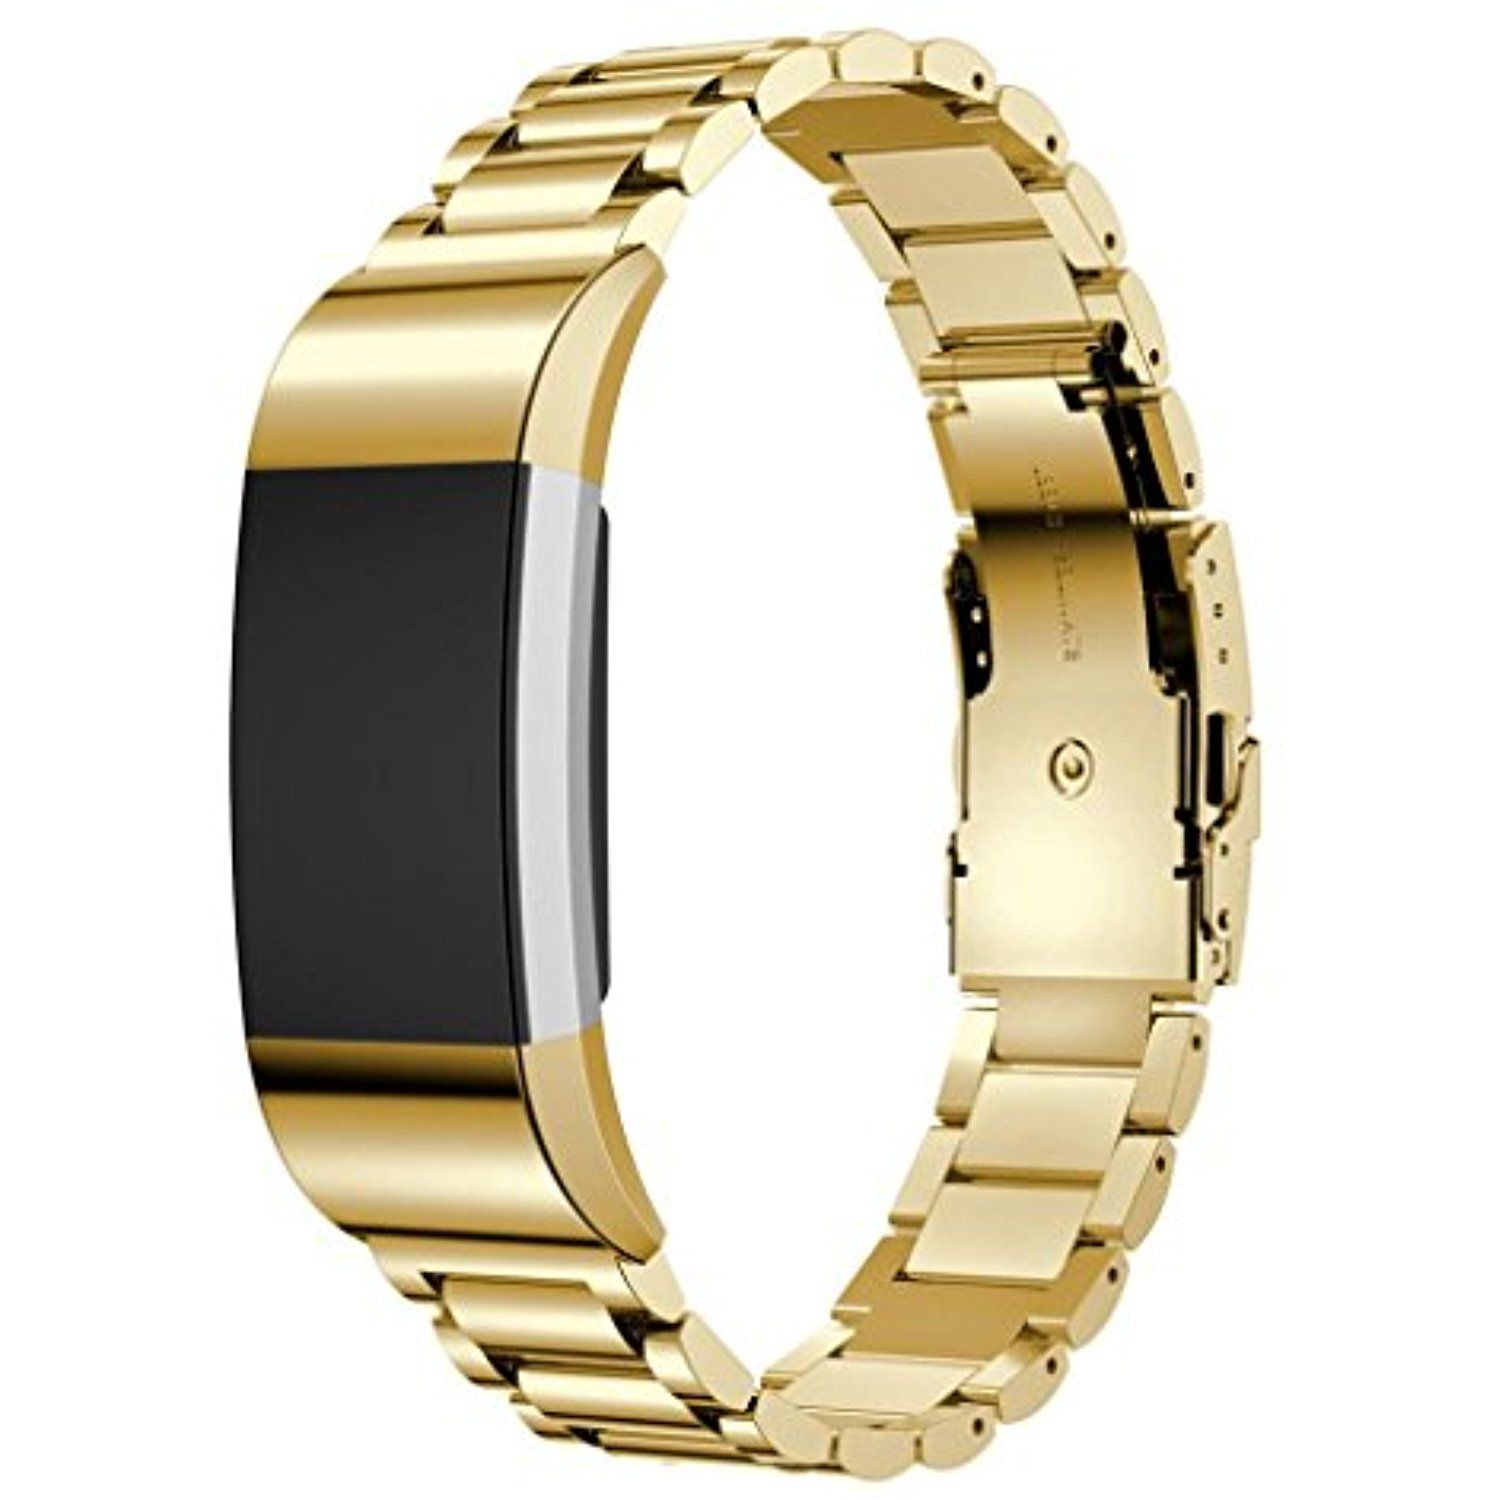 Tloowy stainless steel smart watch band strap bracelet connector